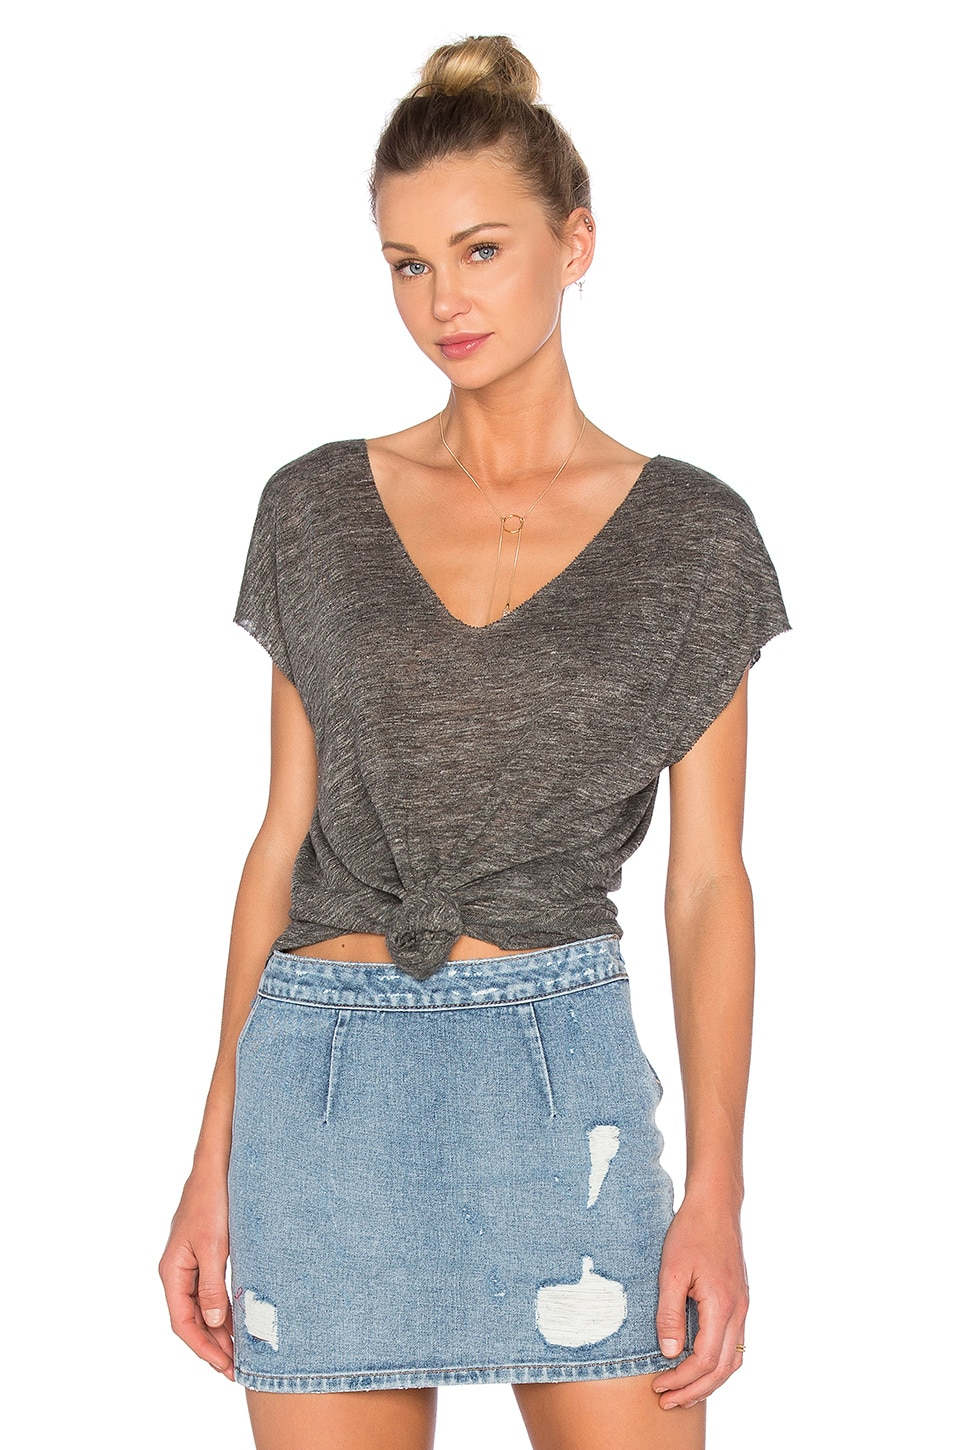 Lata Top by Joie